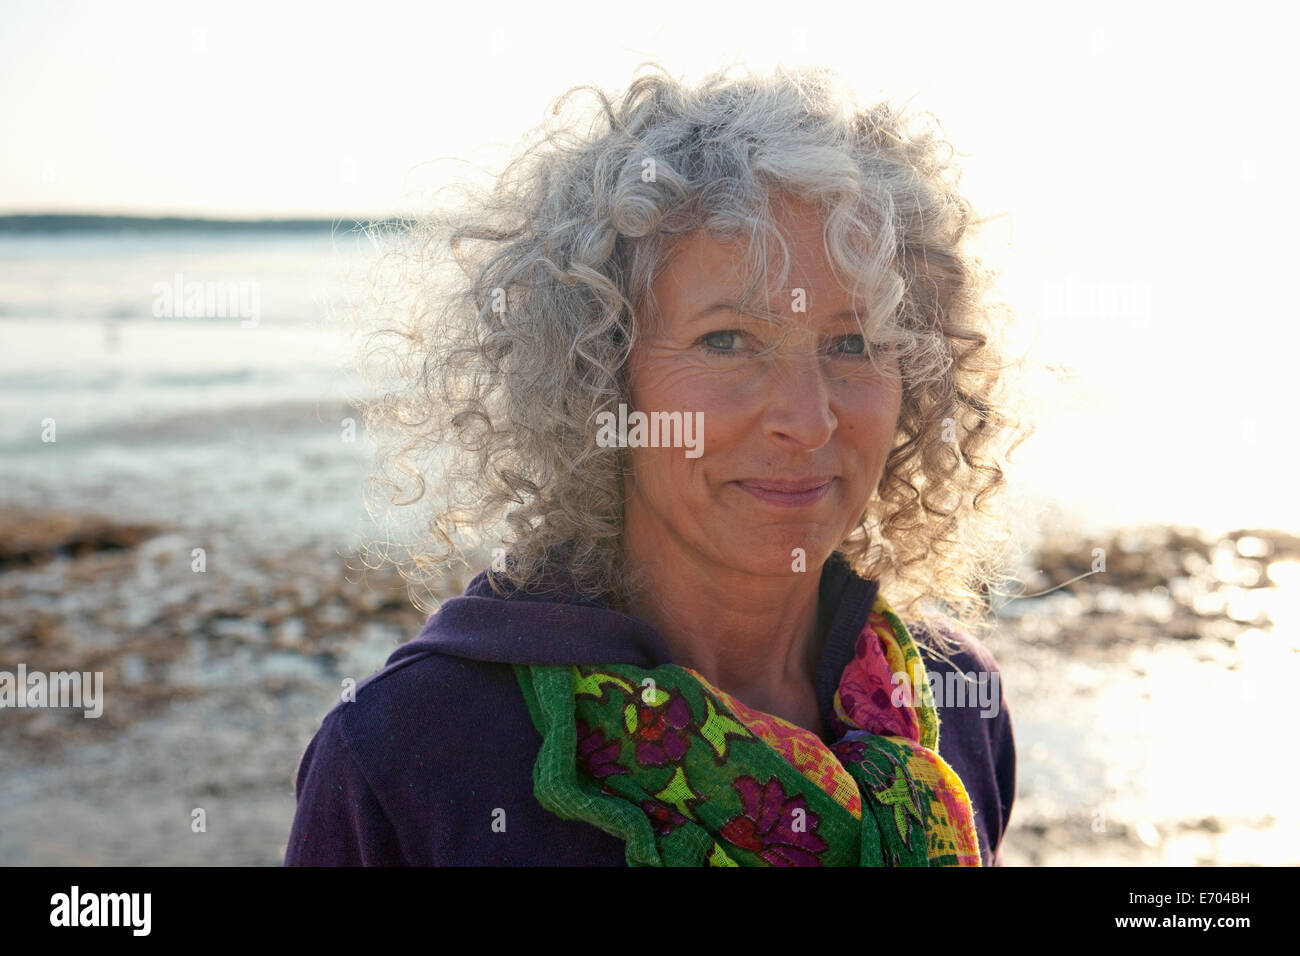 Close up of mature woman by beach - Stock Image